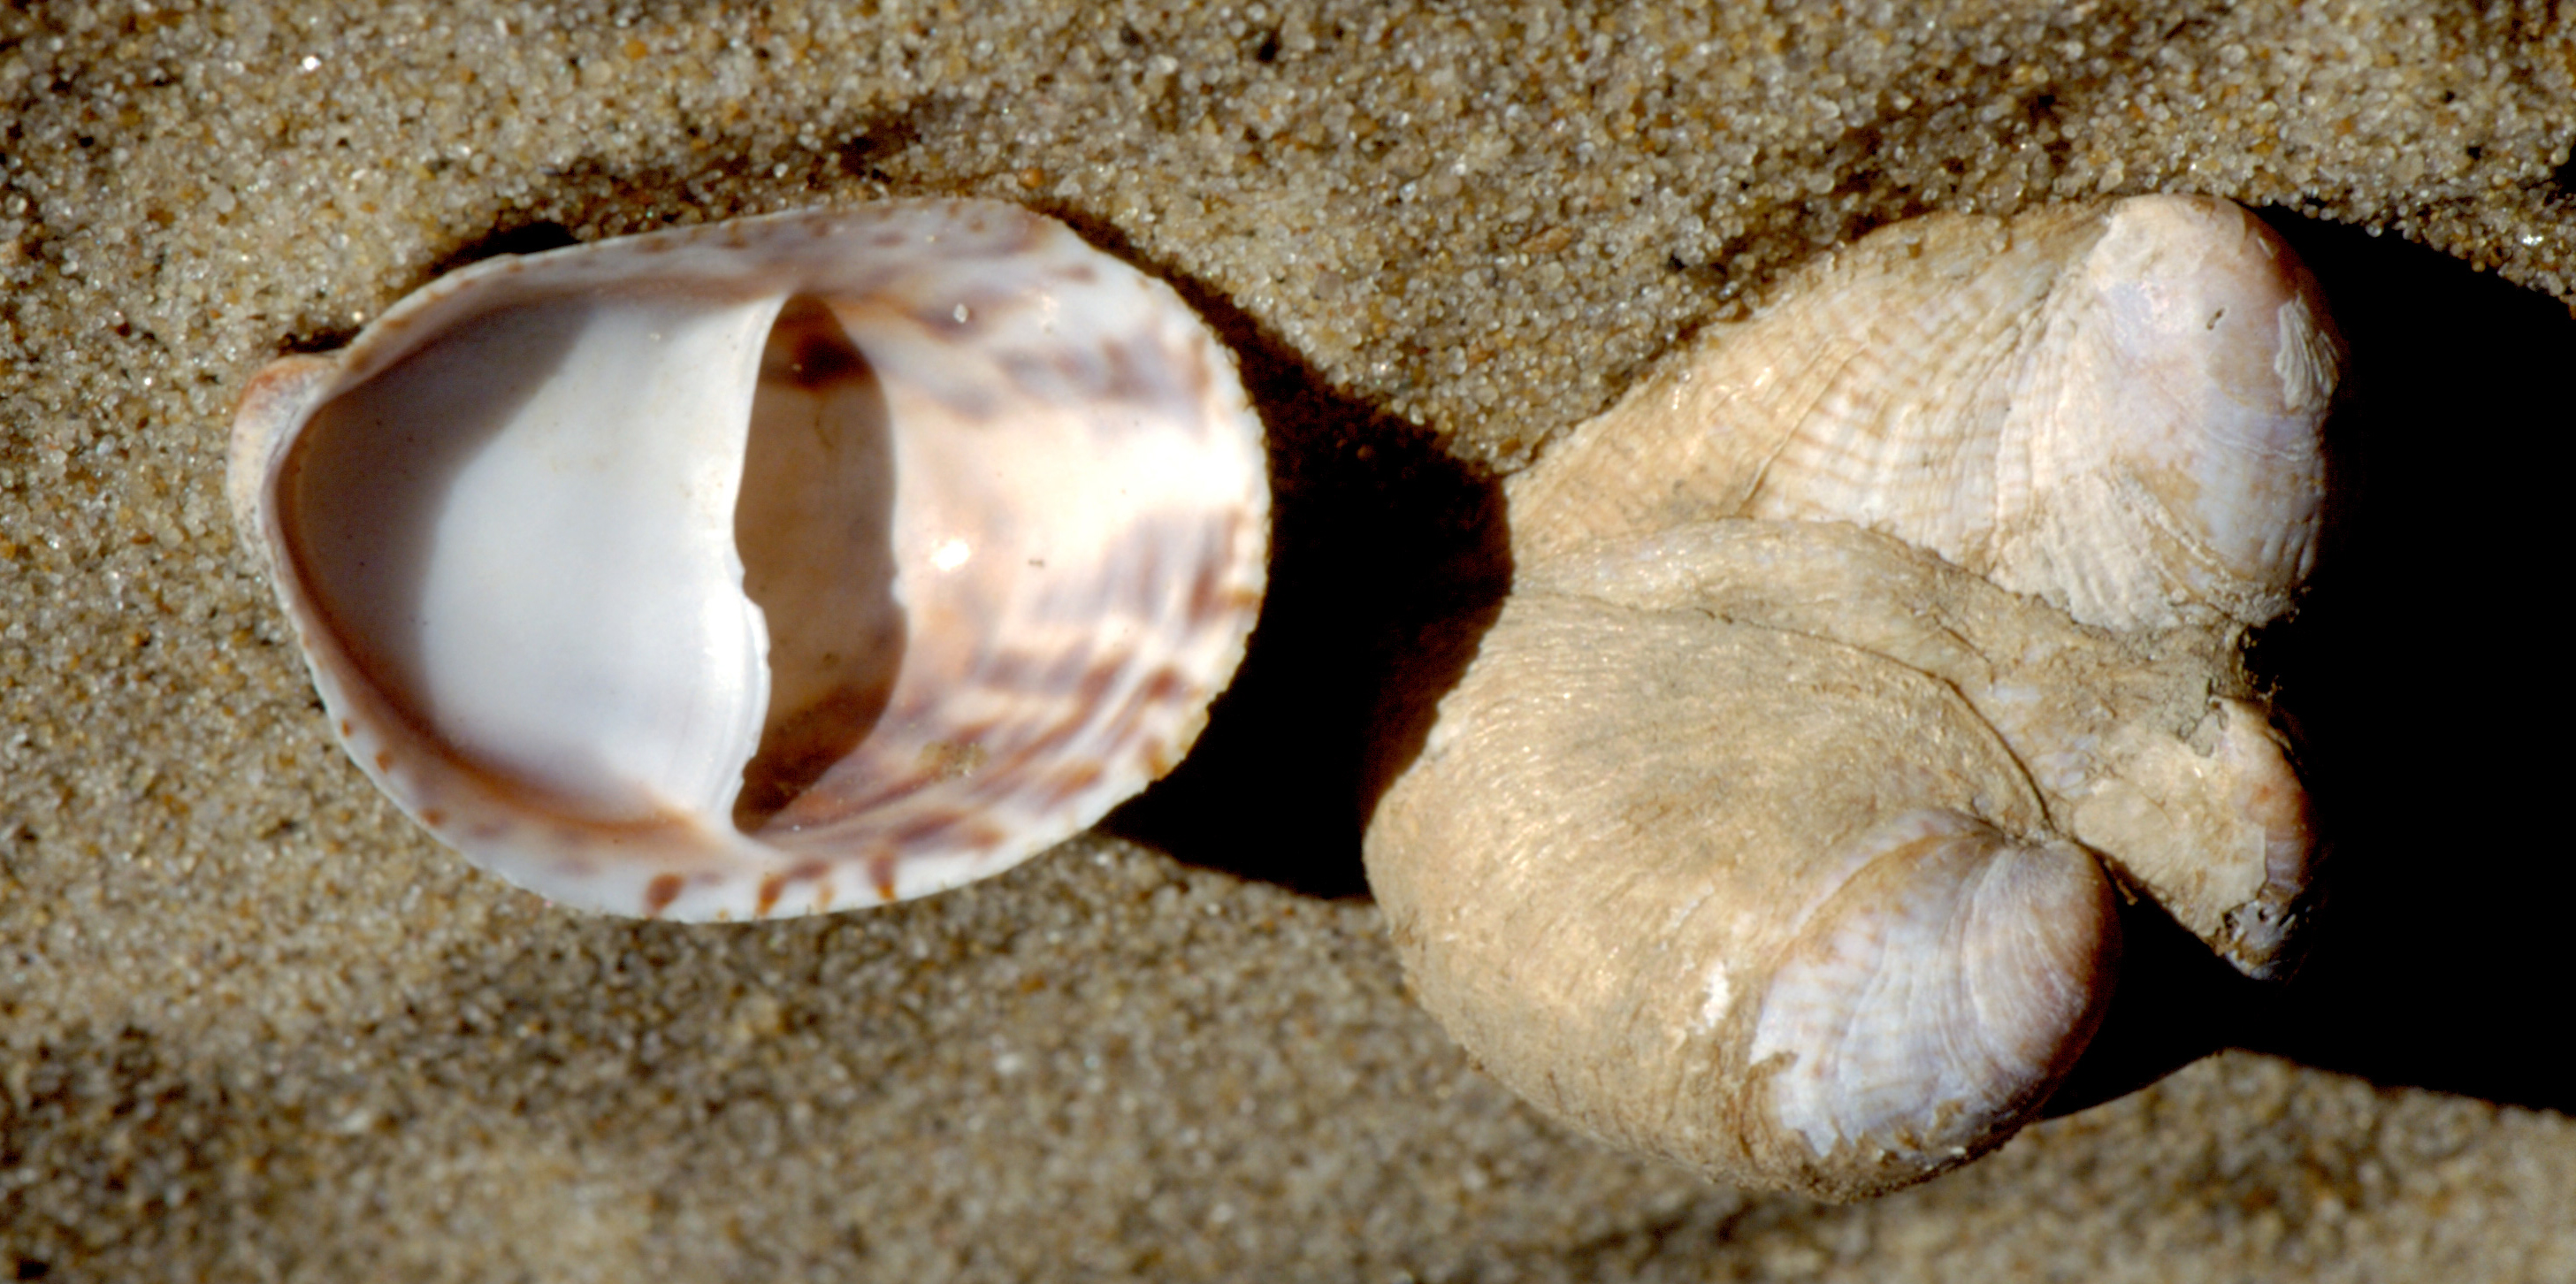 An upside-down, oval-shaped shell with a white underside lays on brown sand beside several similar shells stacked together.